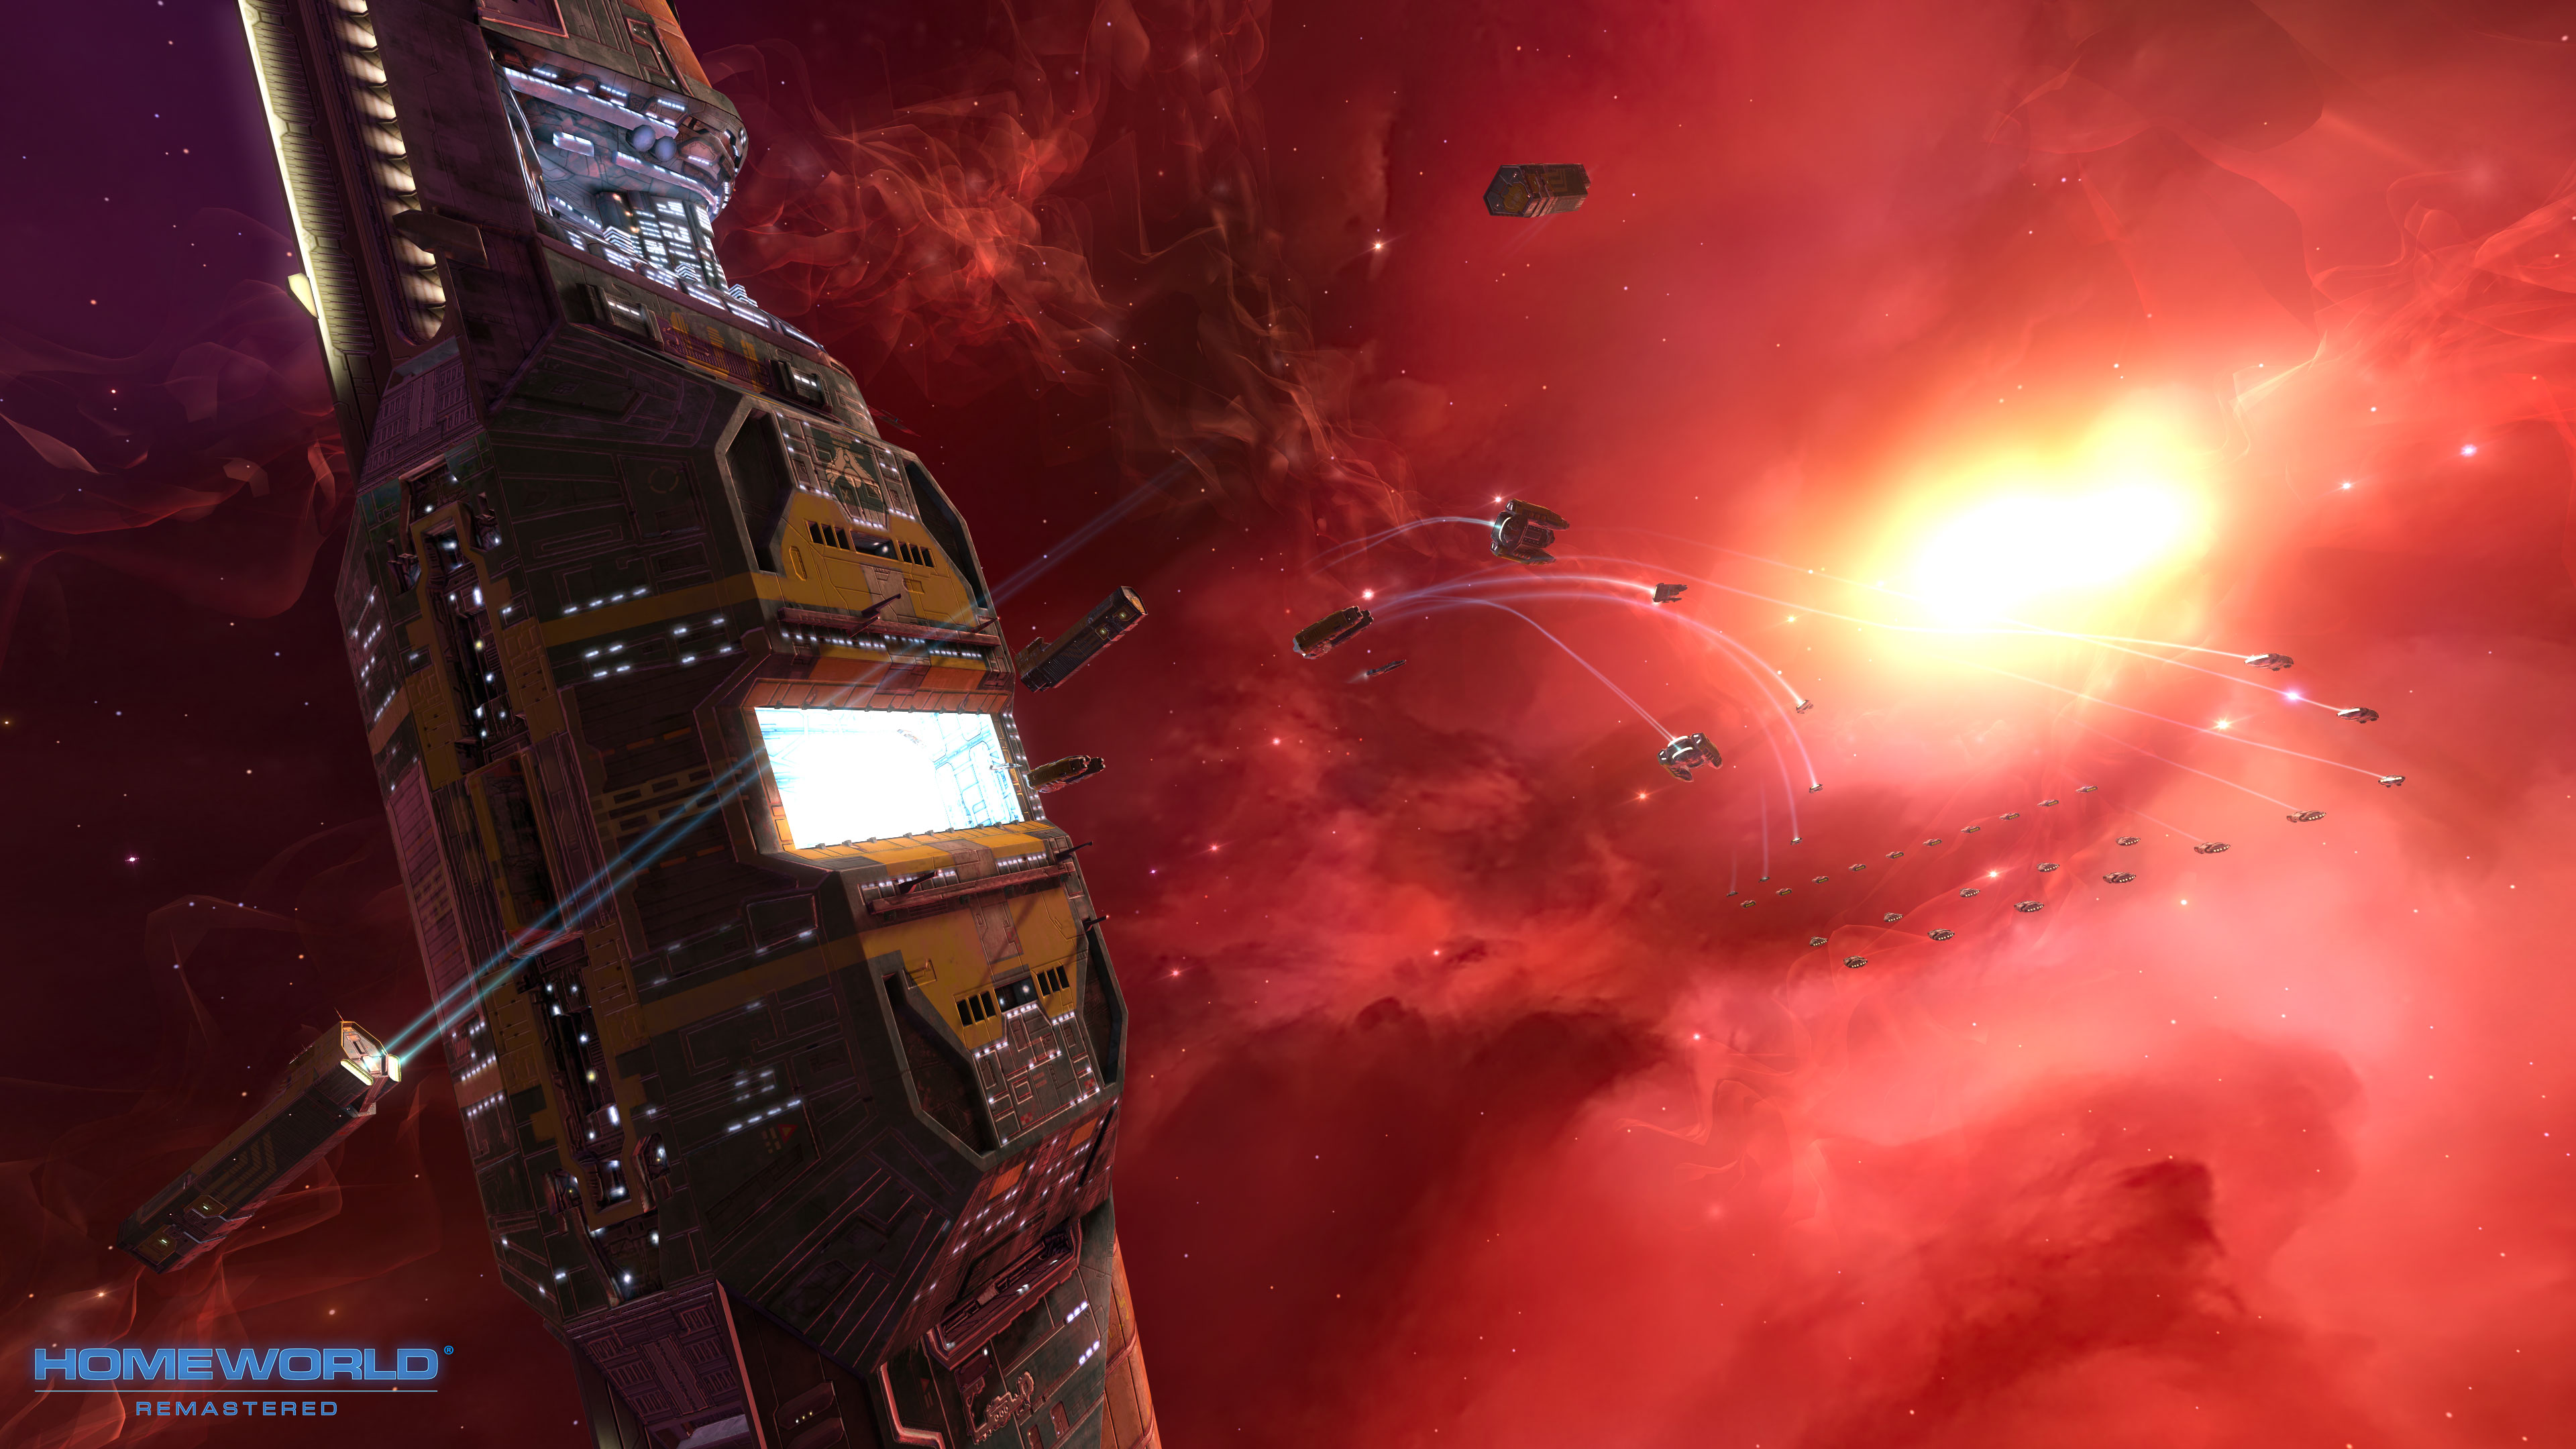 3d Home Wallpaper For Pc Homeworld Remastered Collection